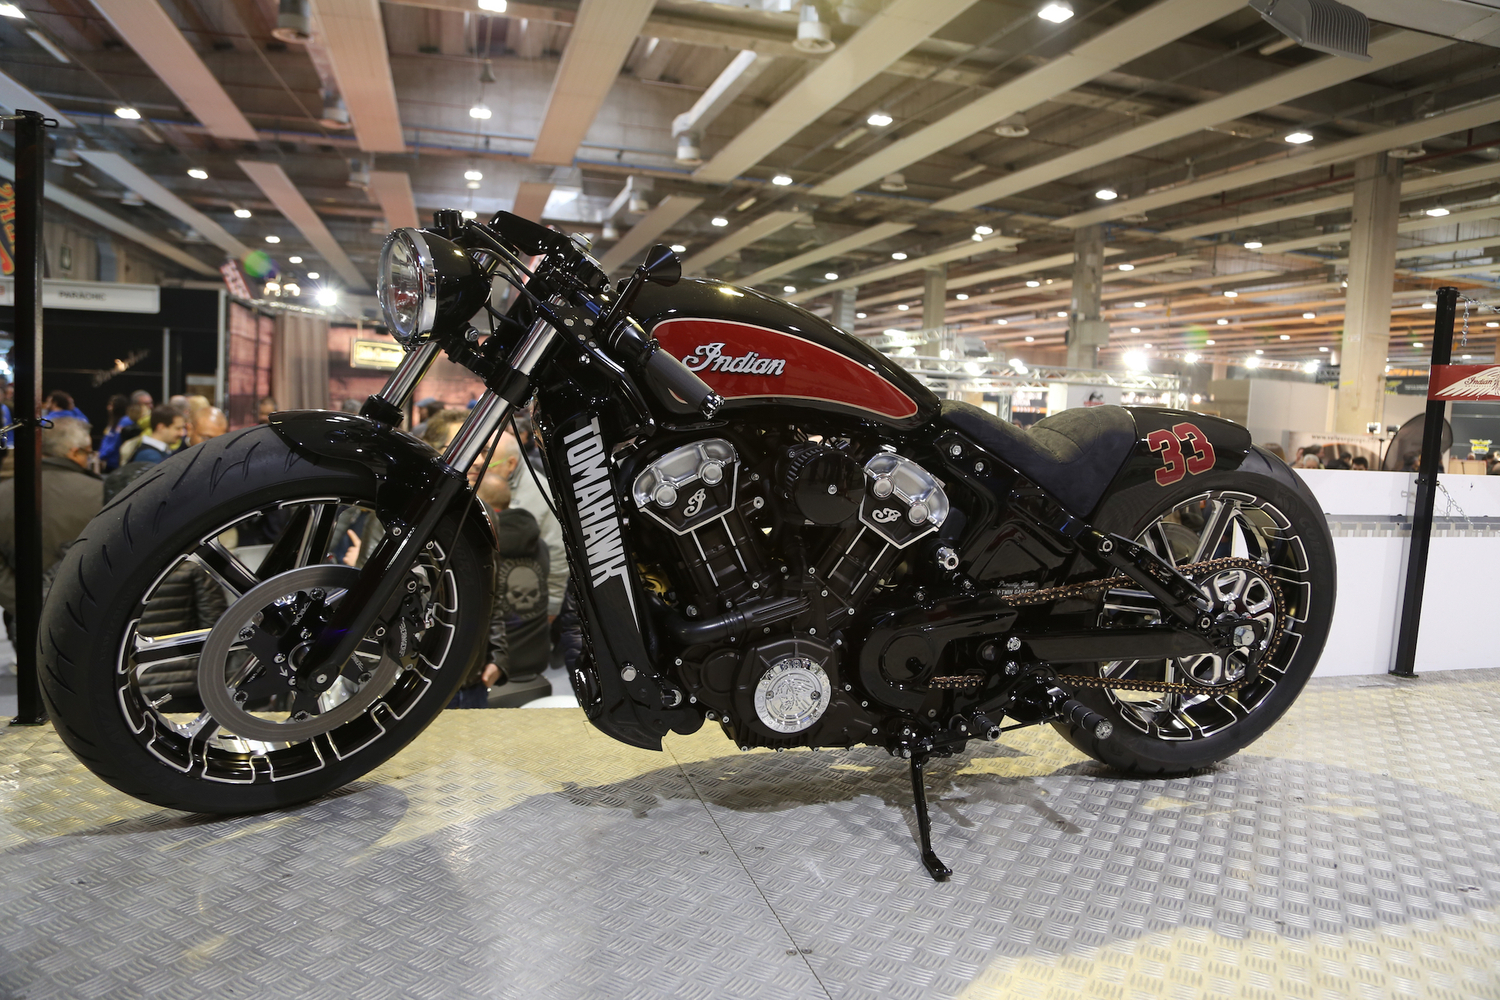 Motor Bike Expo 2016: Indian Tomahawk, una special per Daytona